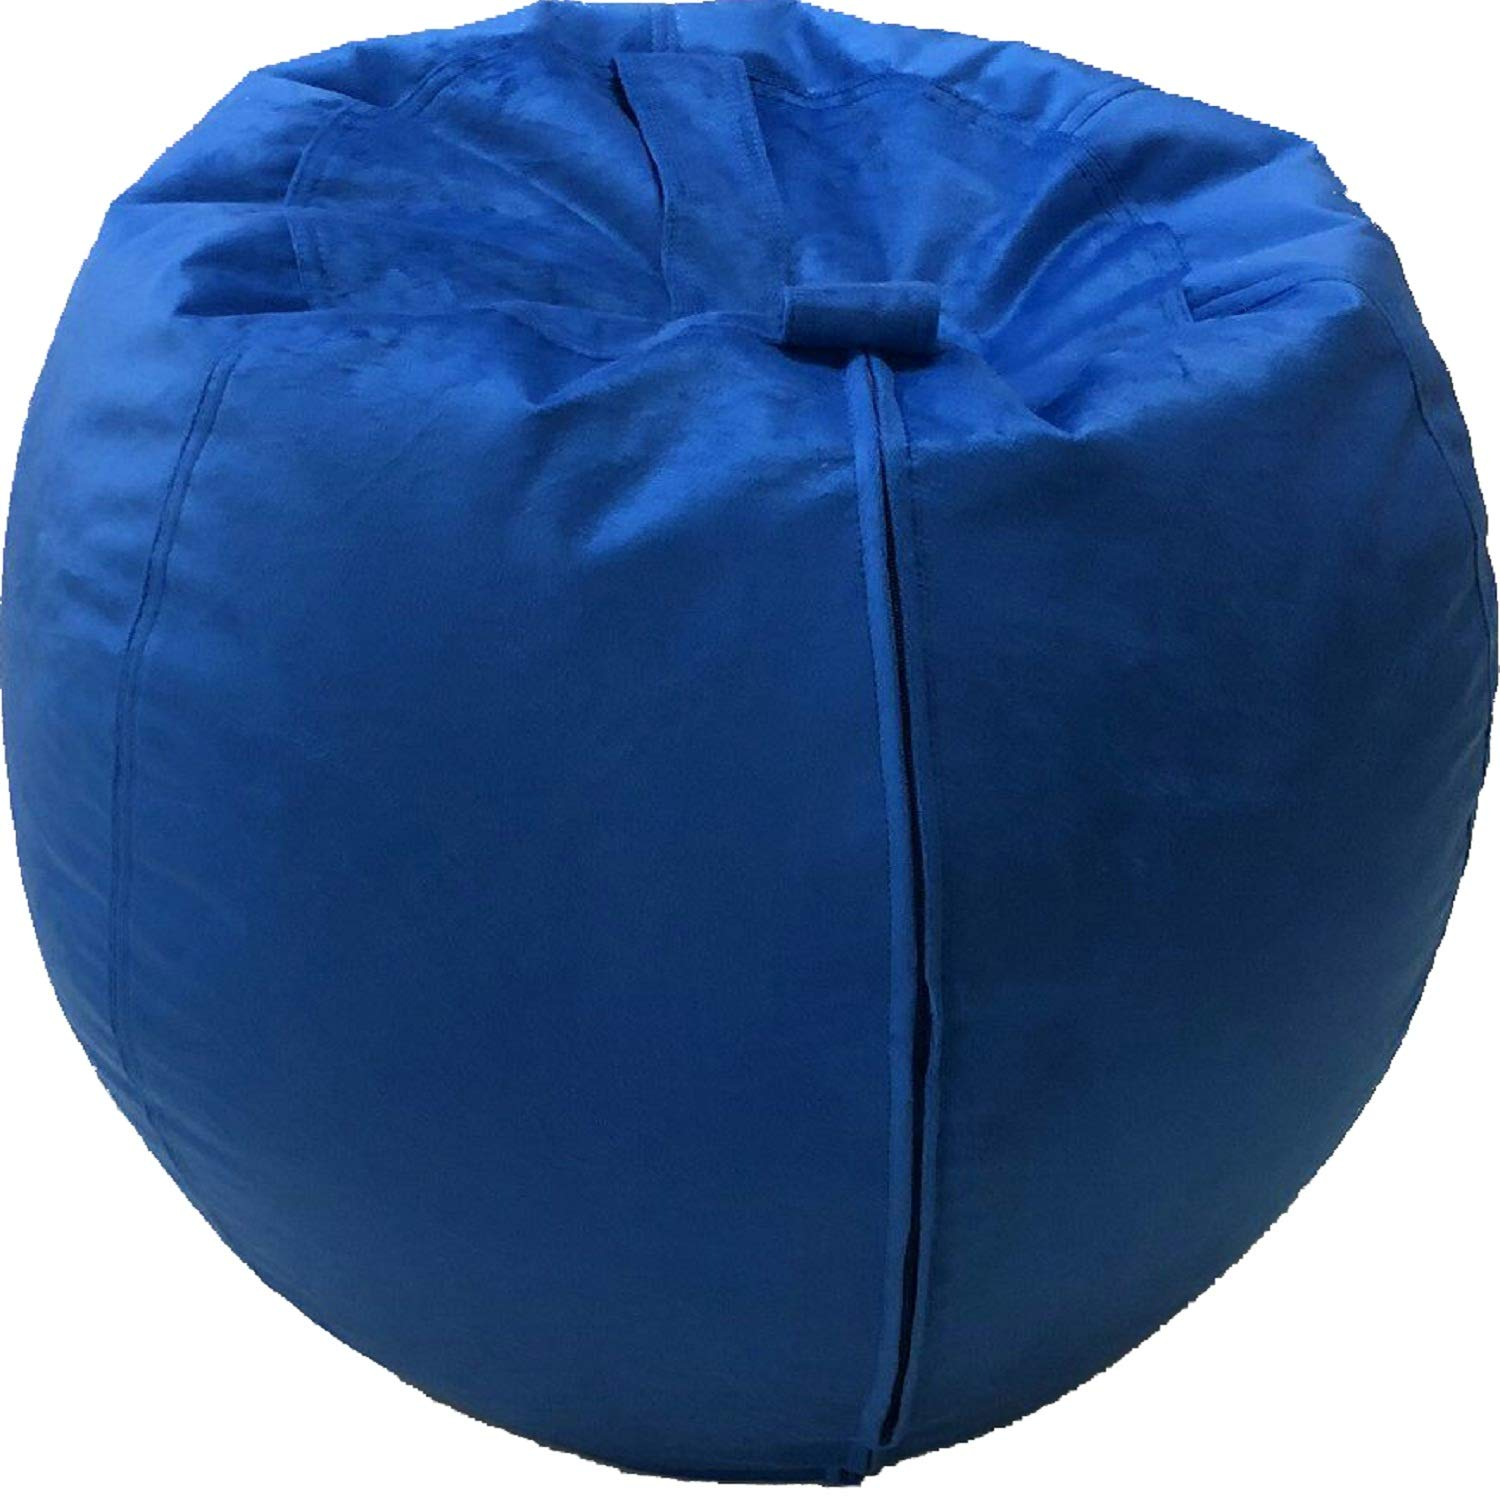 Bean Bag Covers Only Royal Blue 40 Stuffed Animal Storage Premium Velvet Extreme Soft Perfect Storage Solution for Pillows//Toys//Blankets 40 Inches